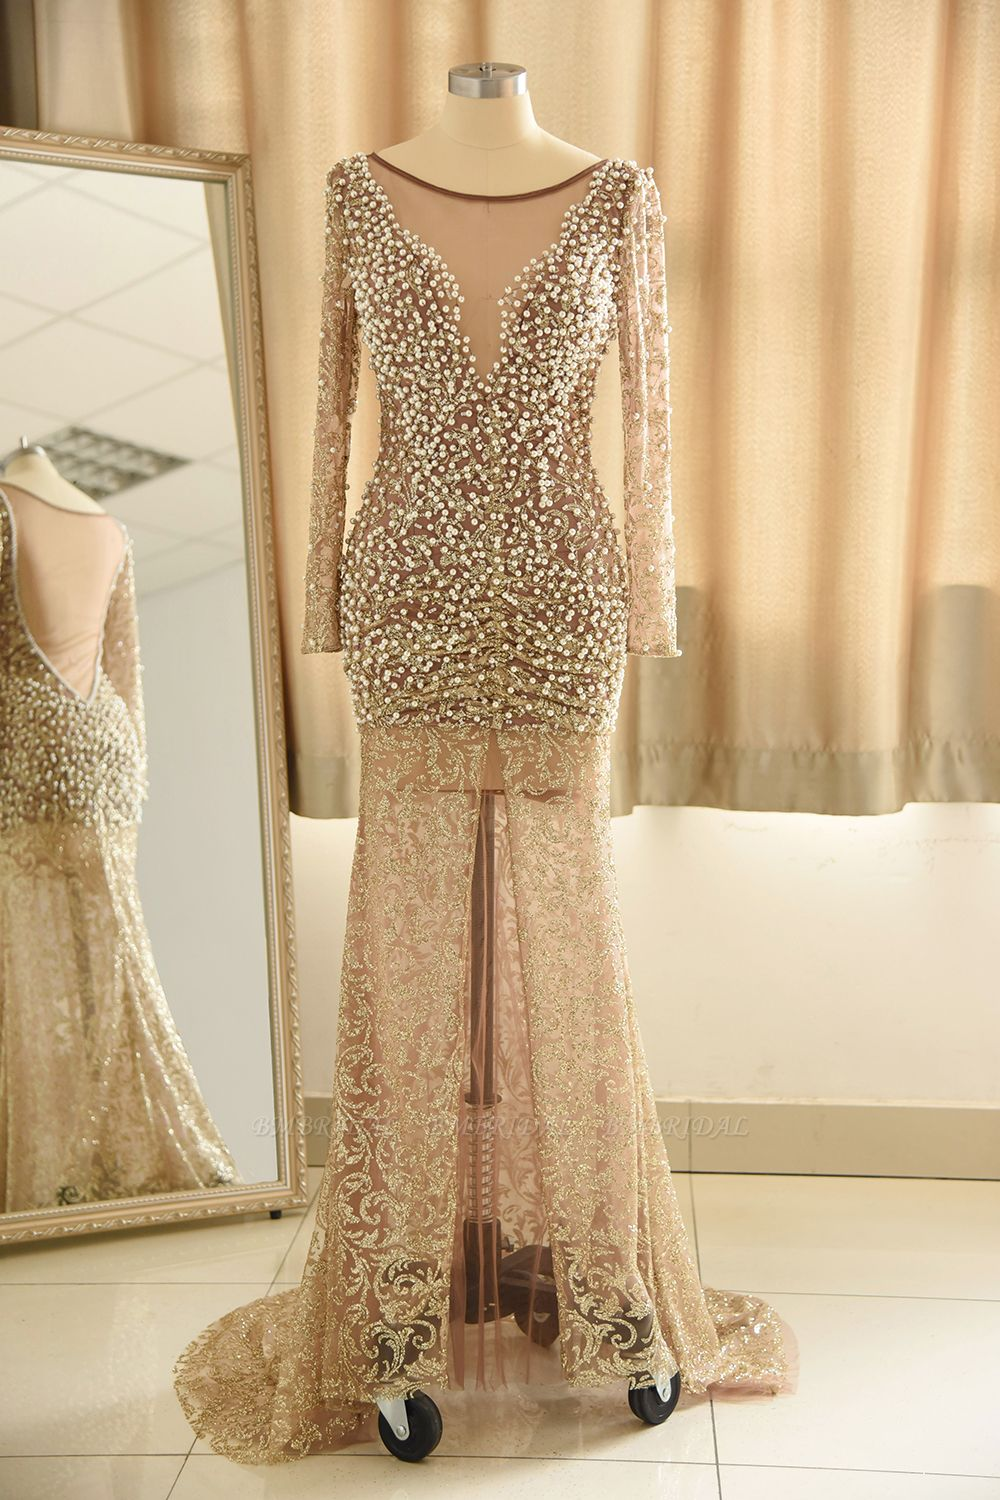 Glamorous Jewel Lace Front Slit Prom Dresses Long Sleeves Appliques Formal Dresses with Pearls